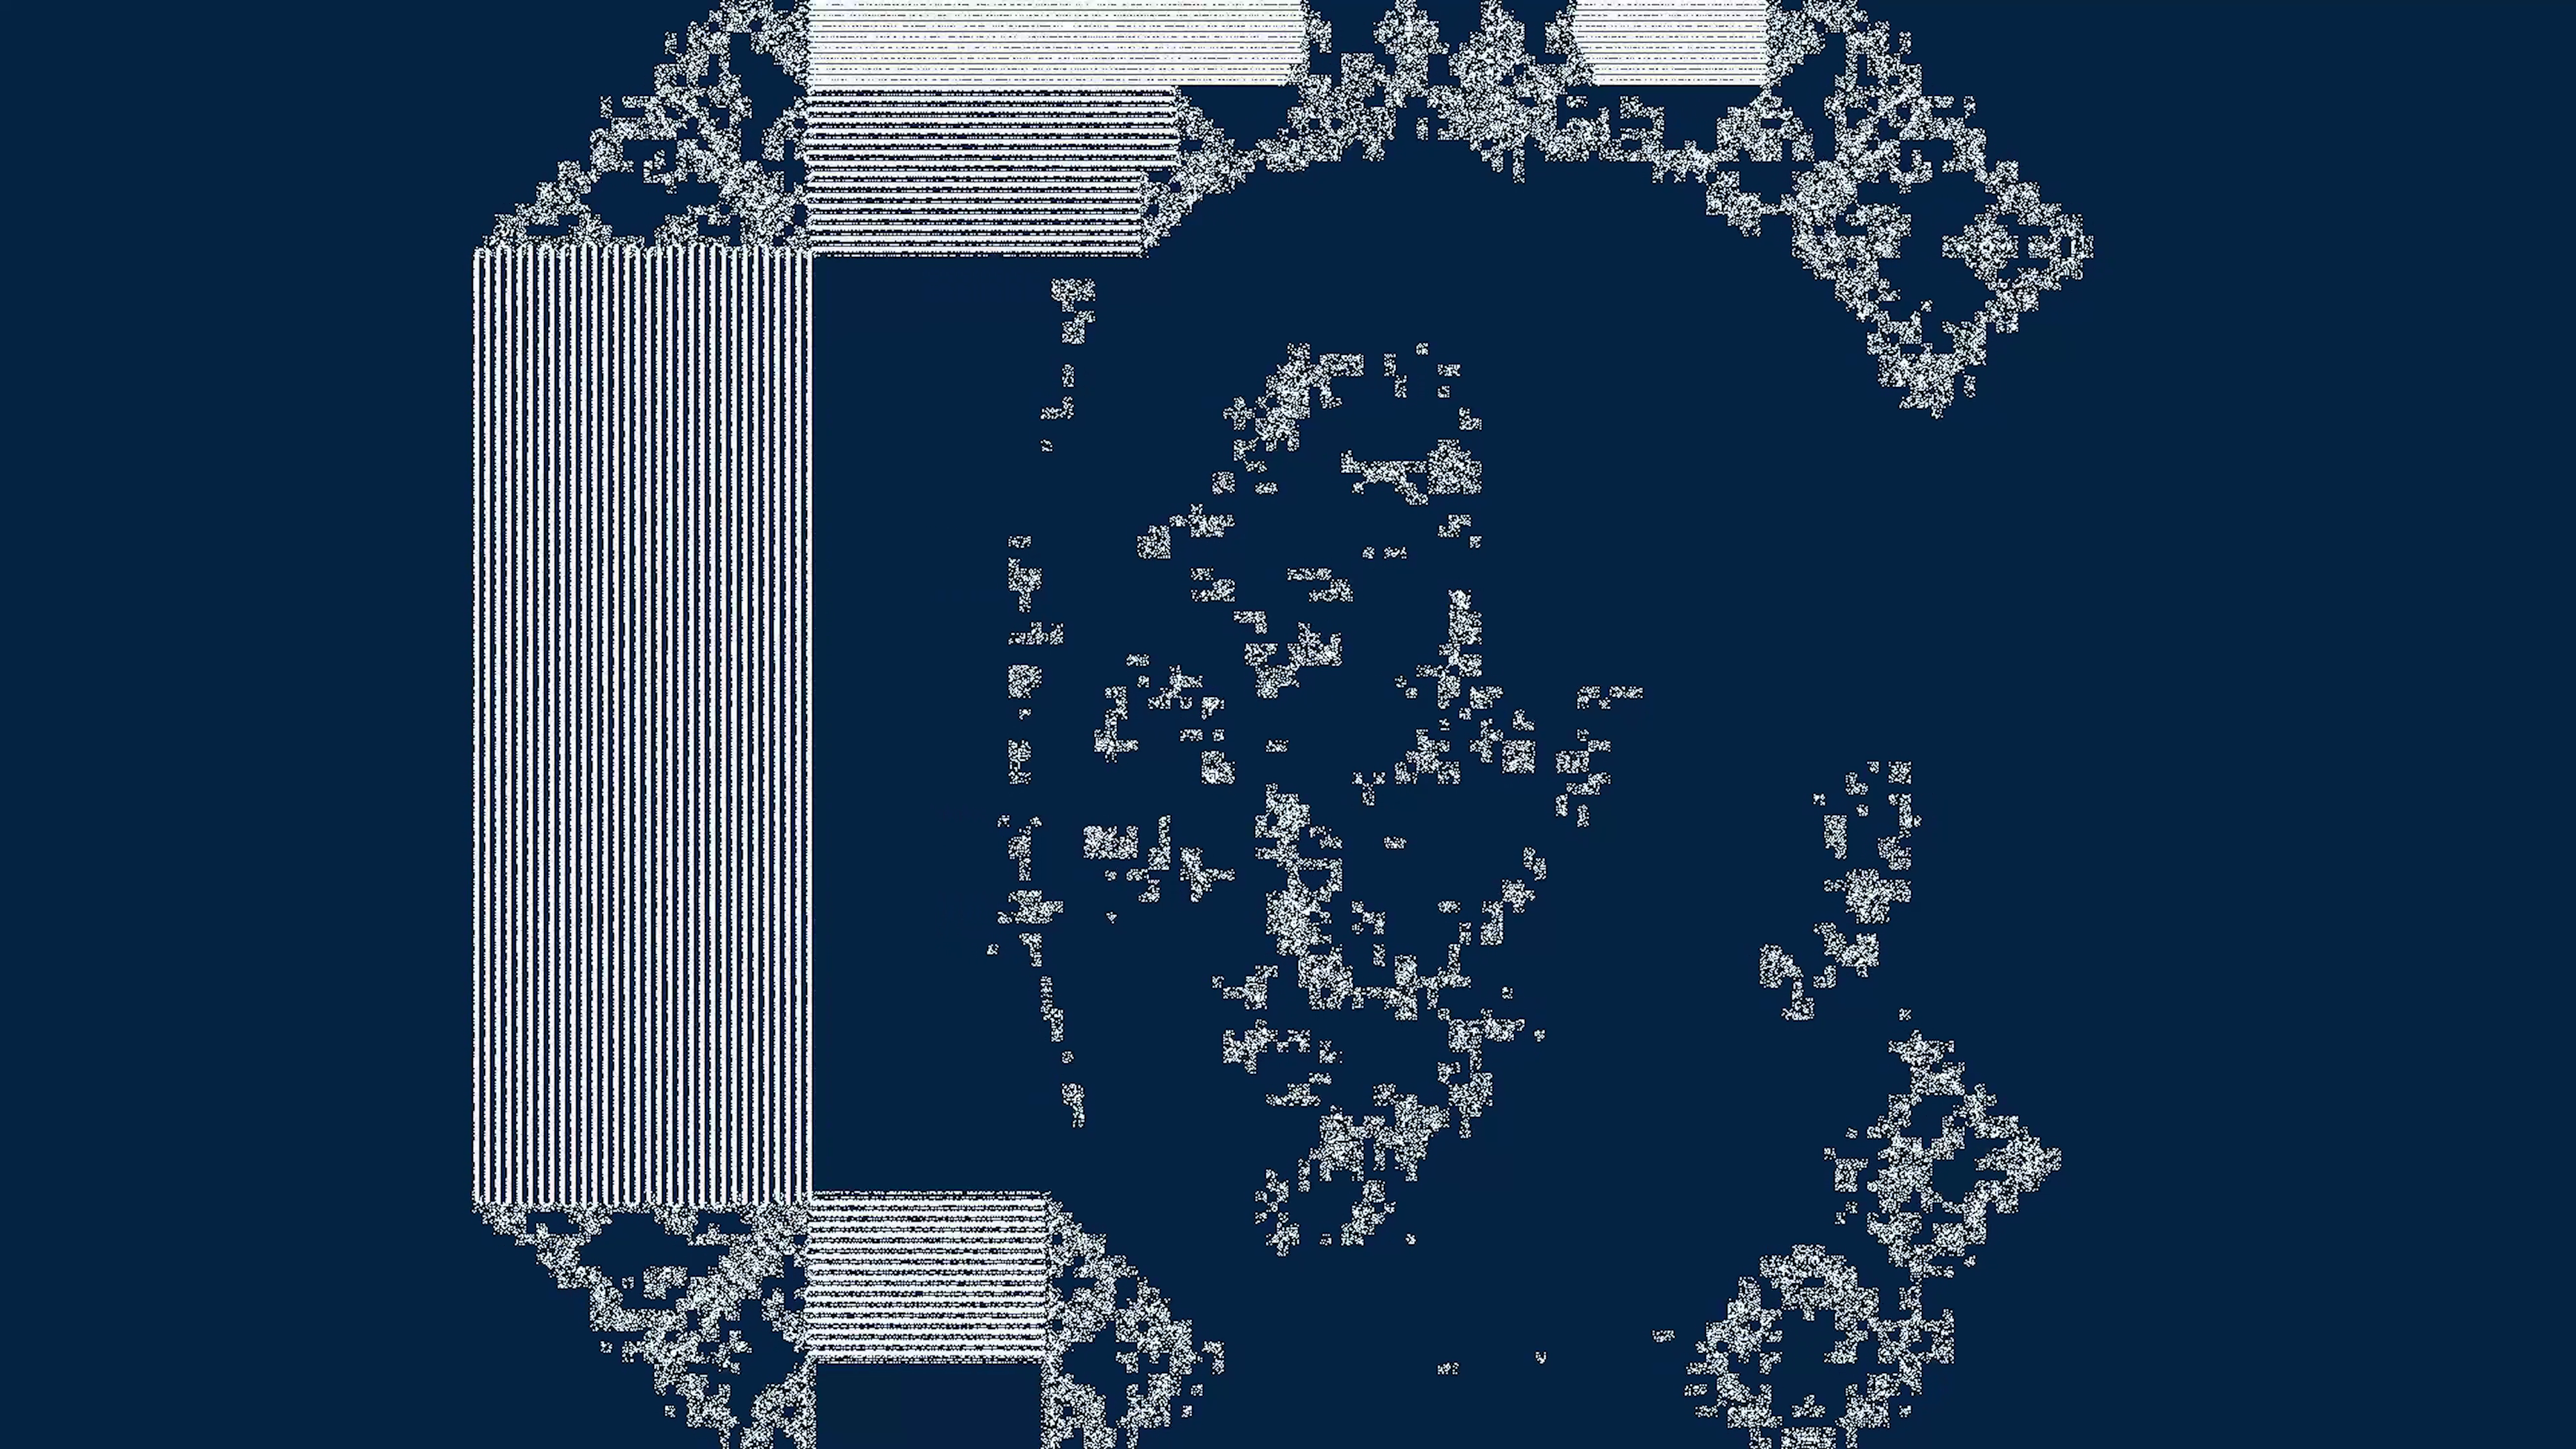 The image is a screengrab from the video 'your dataset must die' and contains abstract imagery of an AI generated face set against a dark blue background'